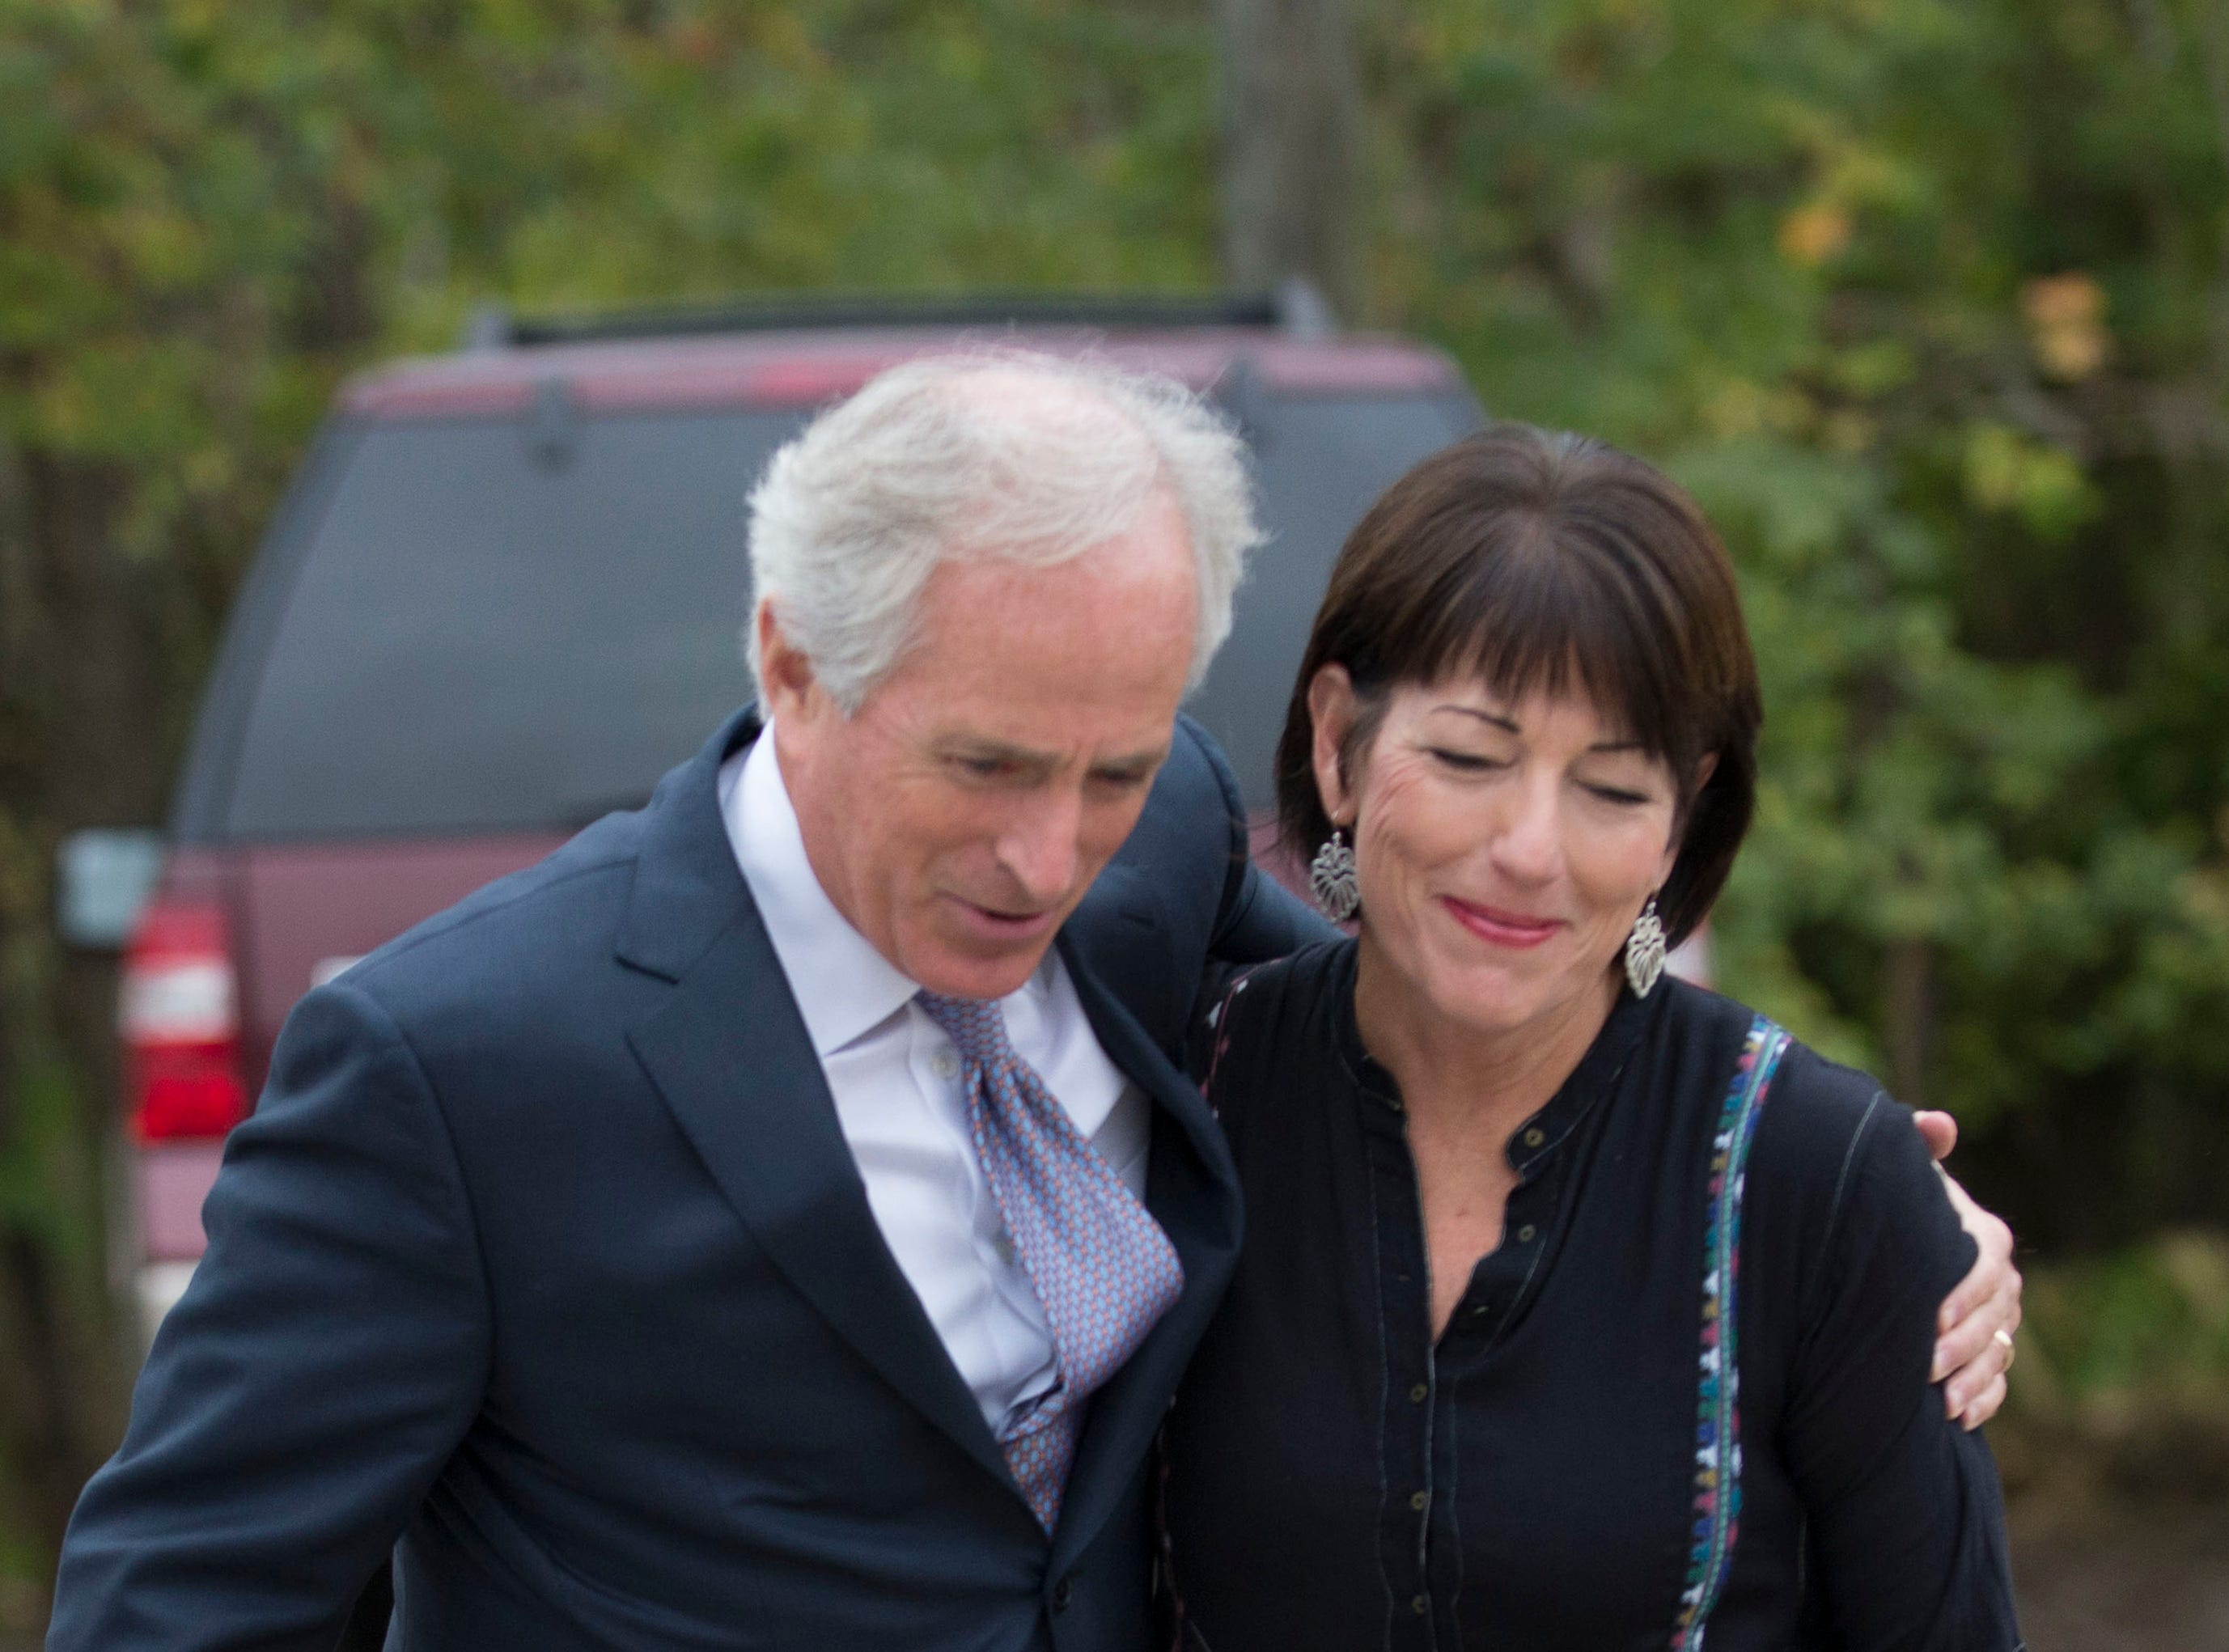 U.S. Sen. Bob Corker is greeted by Legacy Parks Foundation Executive Director Carol Evans as he arrives for the Luncheon for the Parks fundraiser Wednesday, Nov. 5, 2014, in South Knoxville. Nearly 800 community and business leaders gathered at the entrance to the Urban Wilderness to celebrate and support the accomplishments of Legacy Parks Foundation.